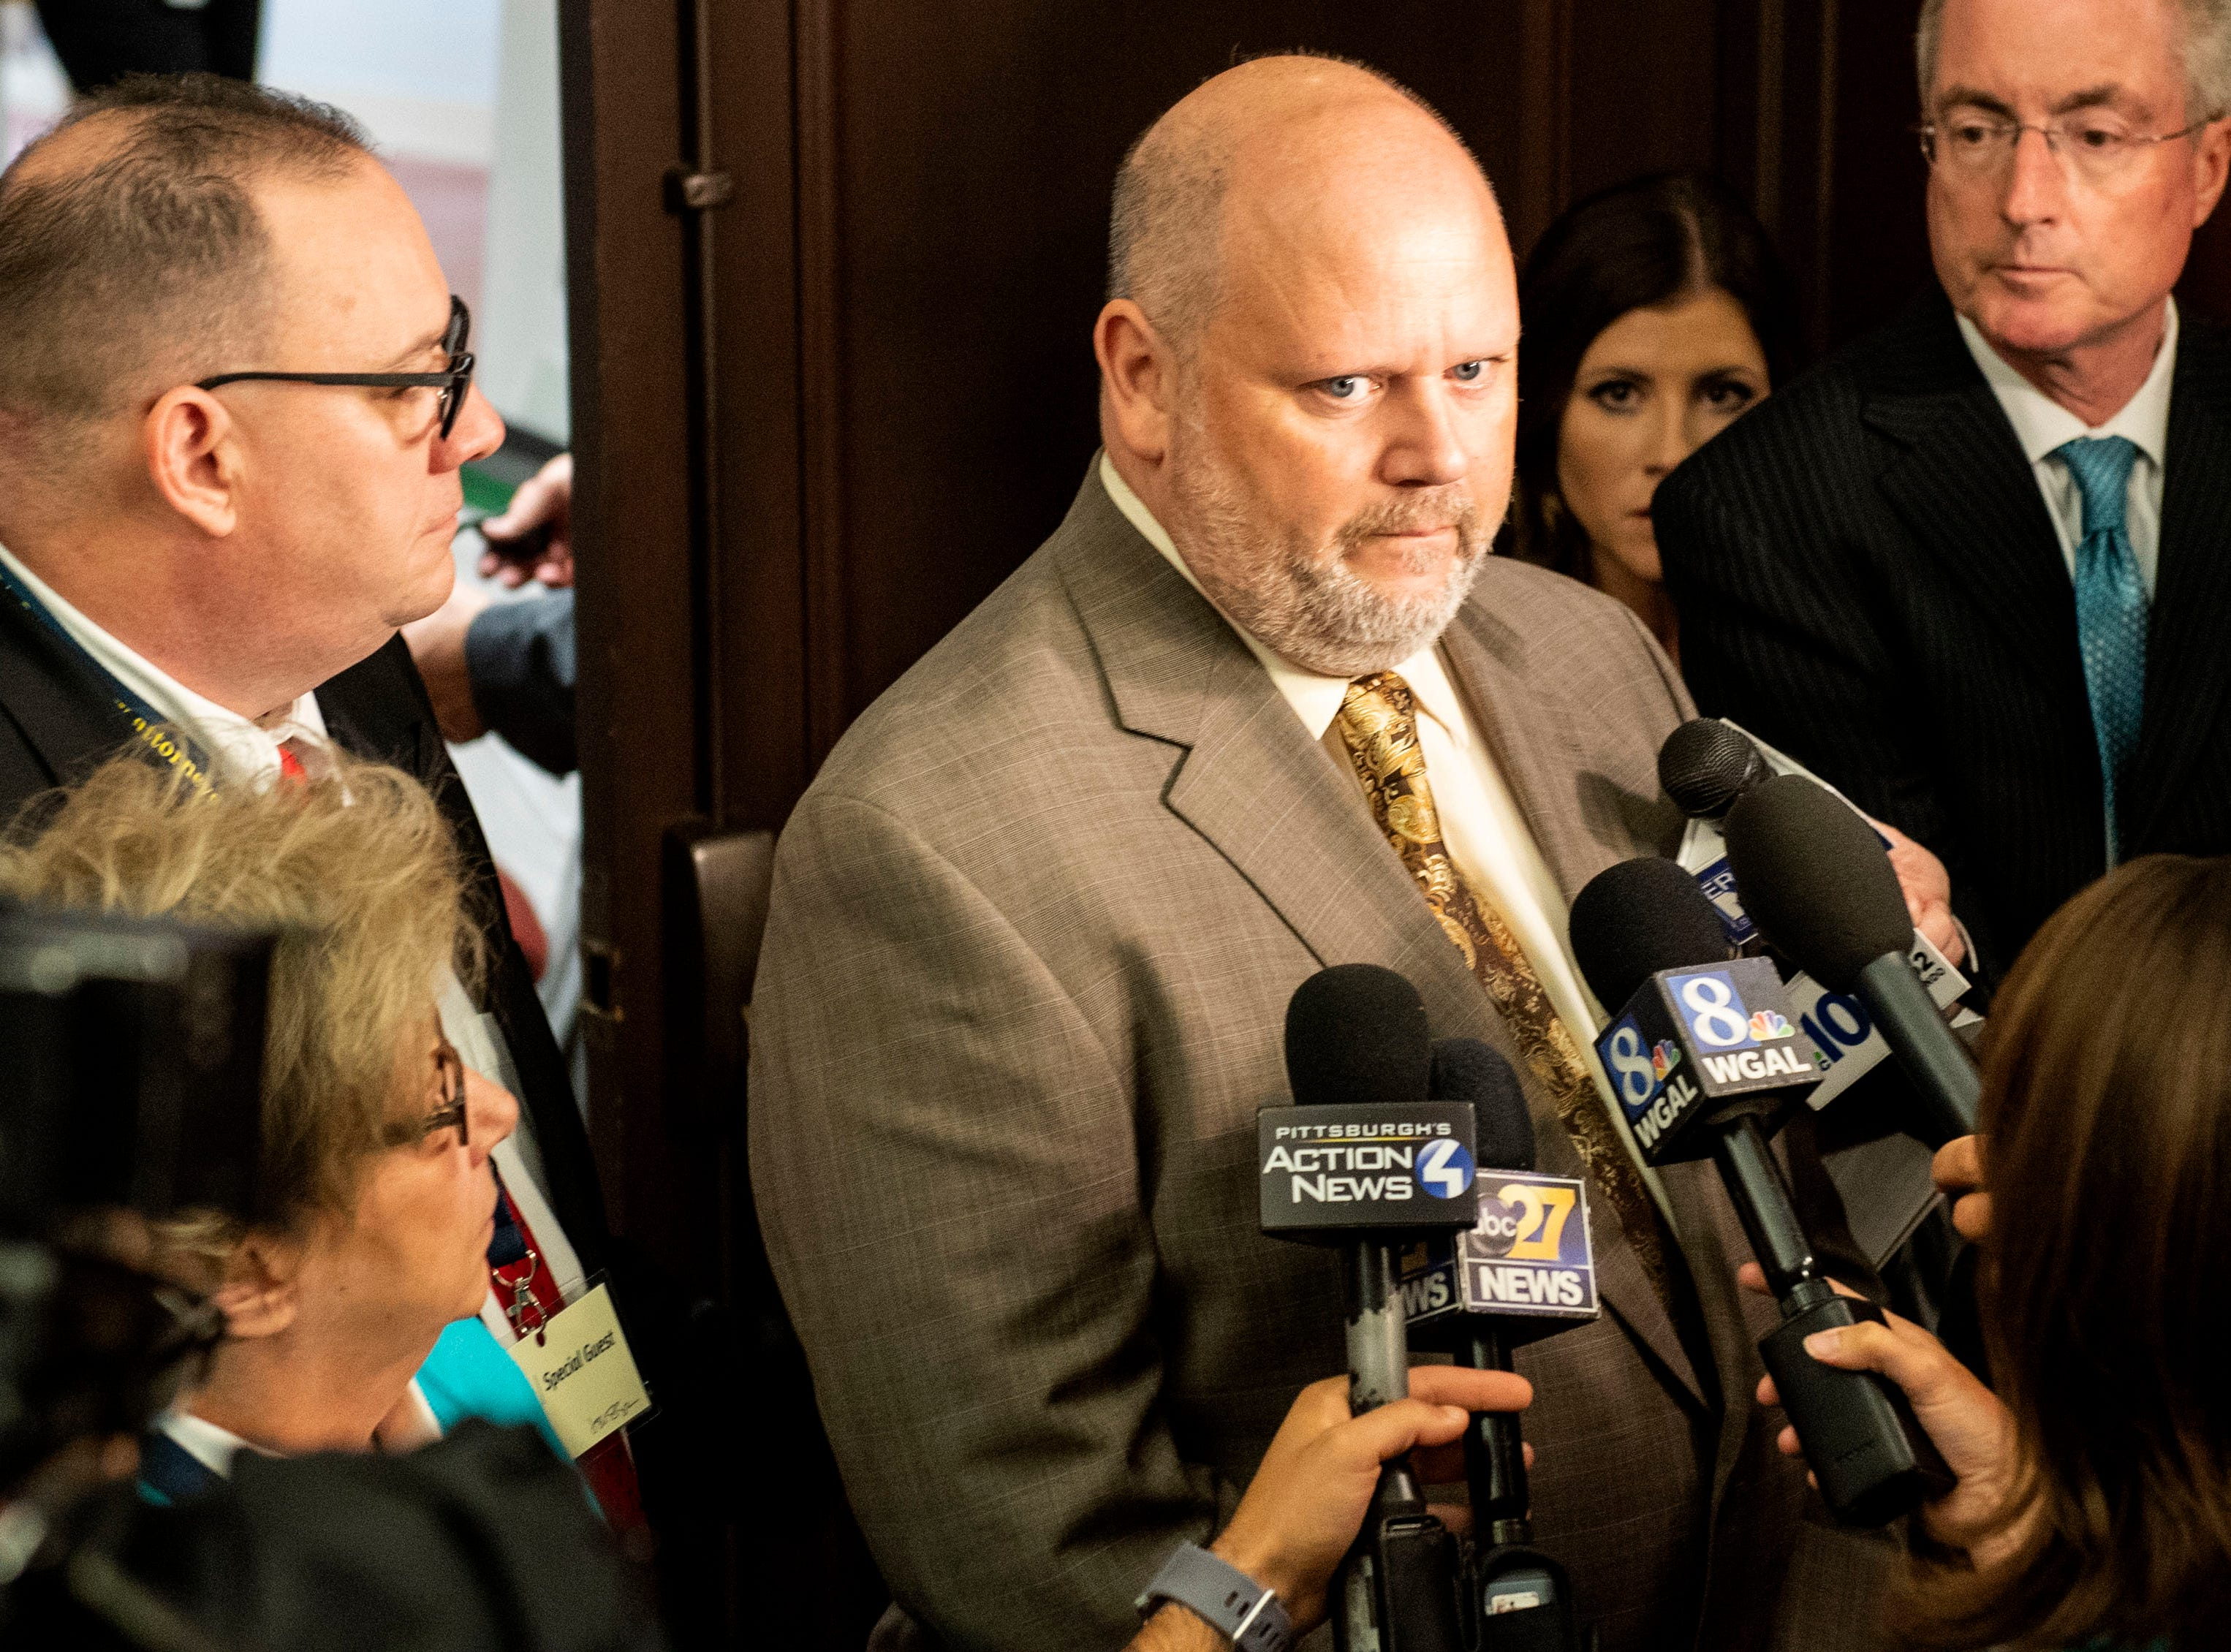 Survivor James Faluszczuk, who was abused by a priest in the Erie diocese, speaks with media the press conference on Tuesday, August 14, 2018. Attorney General Josh Shapiro outlined the findings of the grand jury investigation into six catholic diocese in Pennsylvania. The grand jury's report detailed child sexual abuse and coverup by more than 300 clergy.